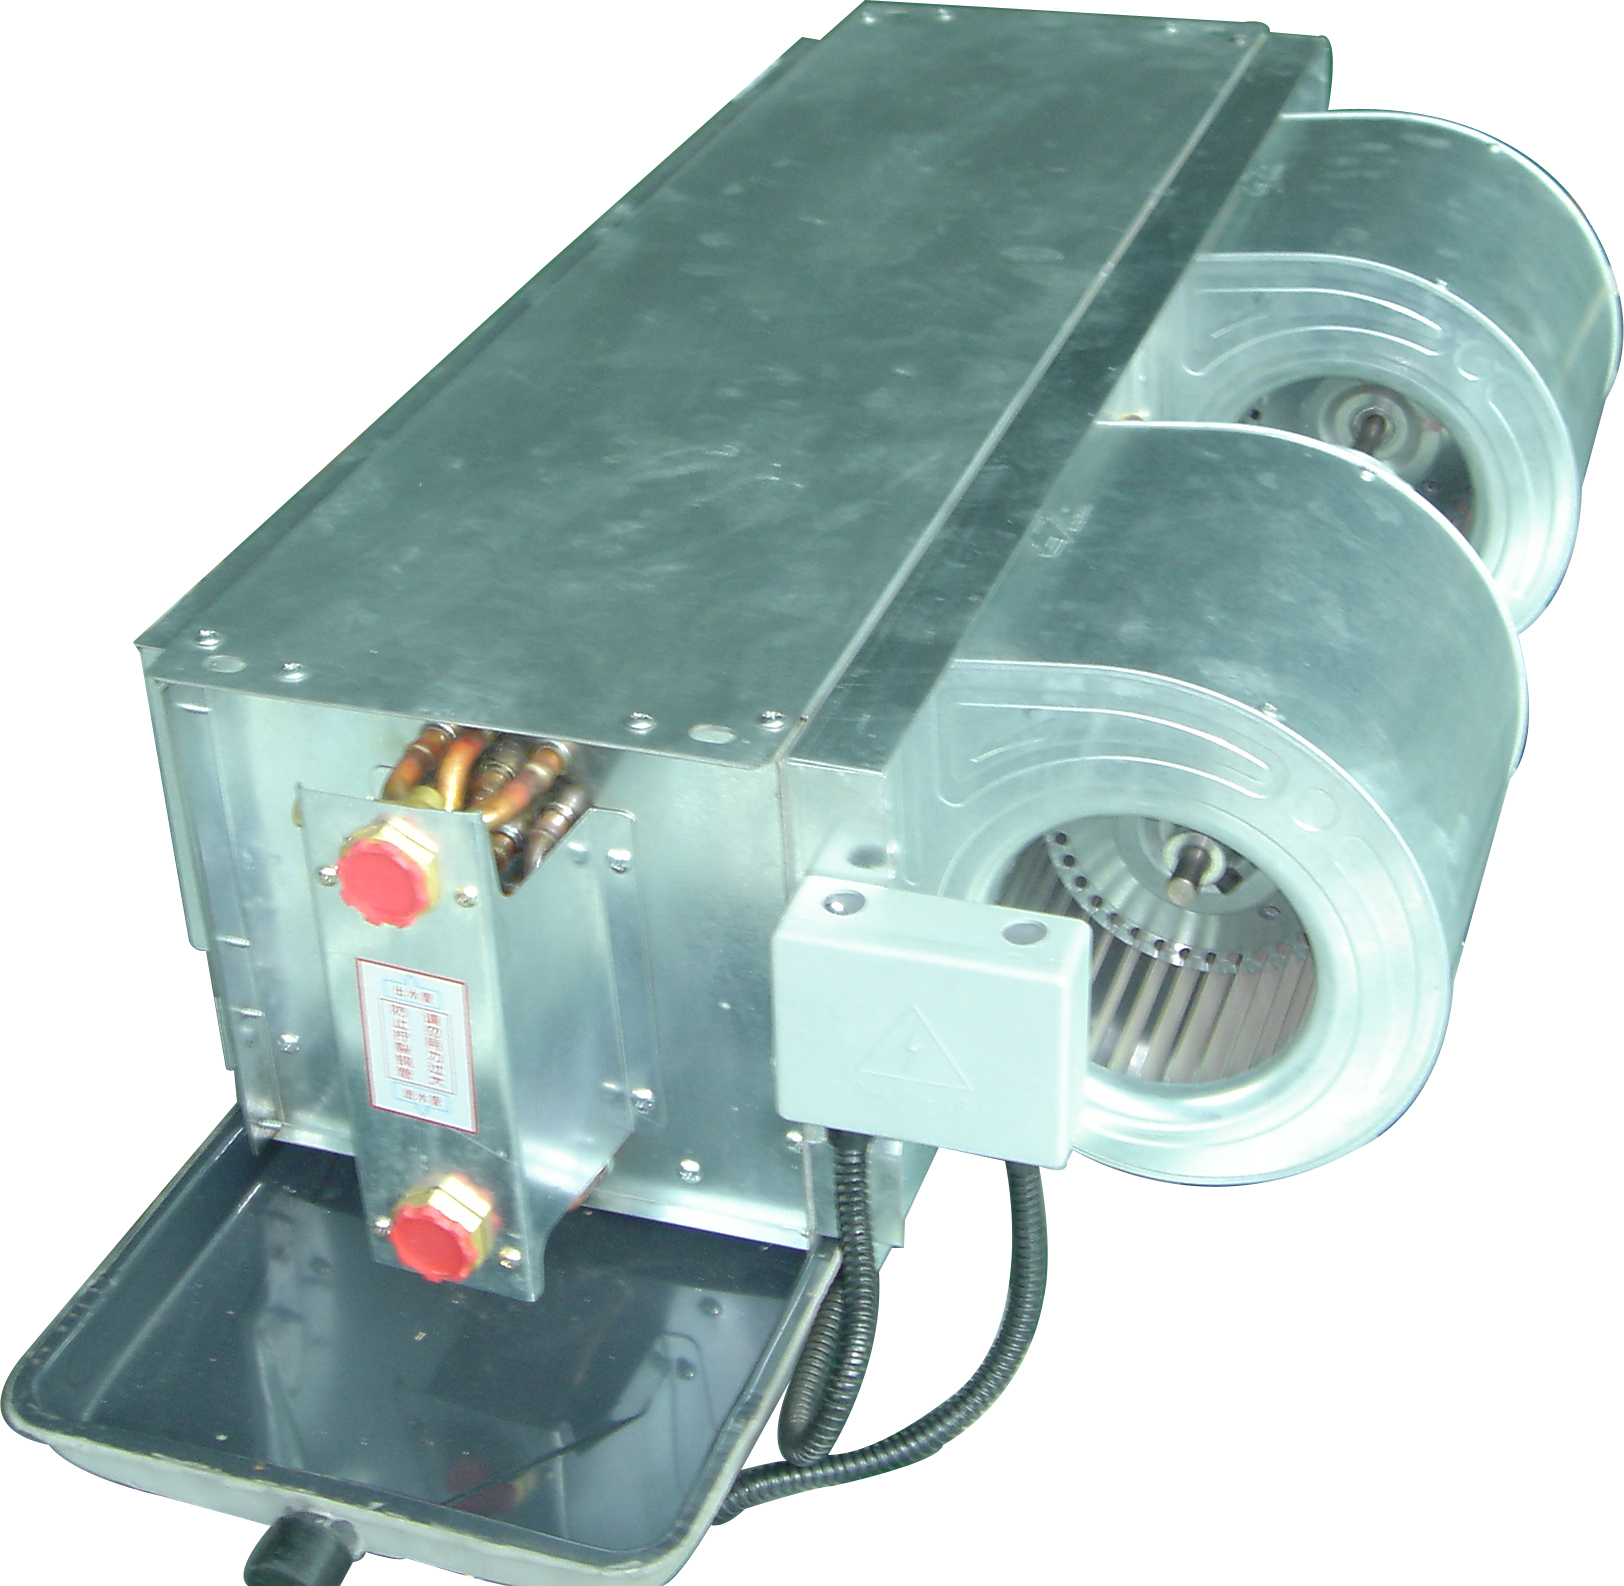 chiller water fan coil unit for heating and cooling